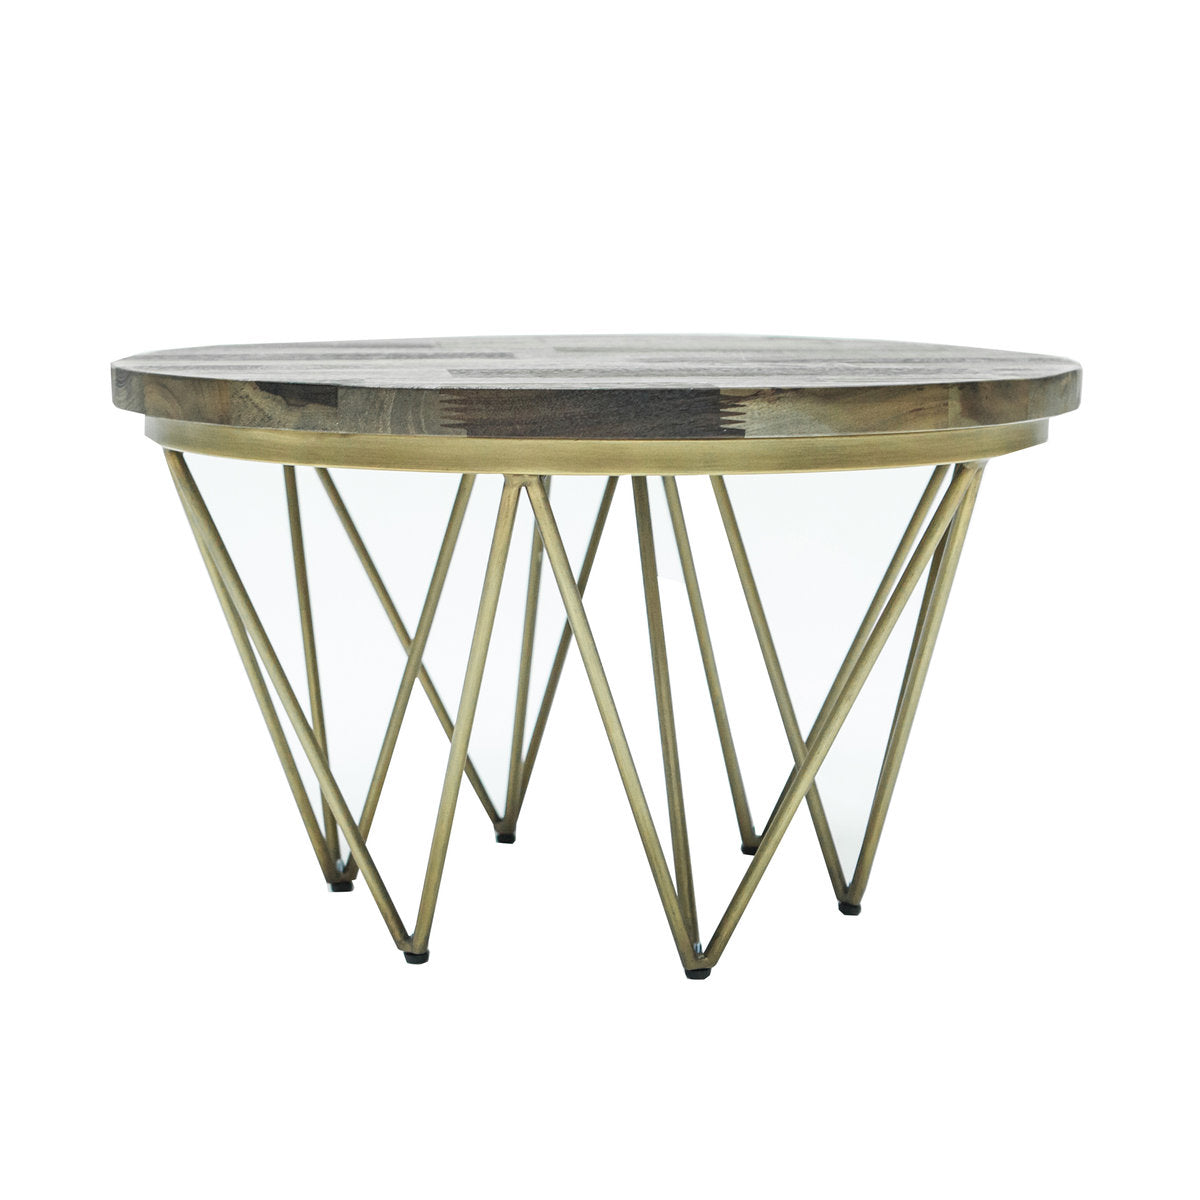 CARMEL ROUND COFFEE TABLE